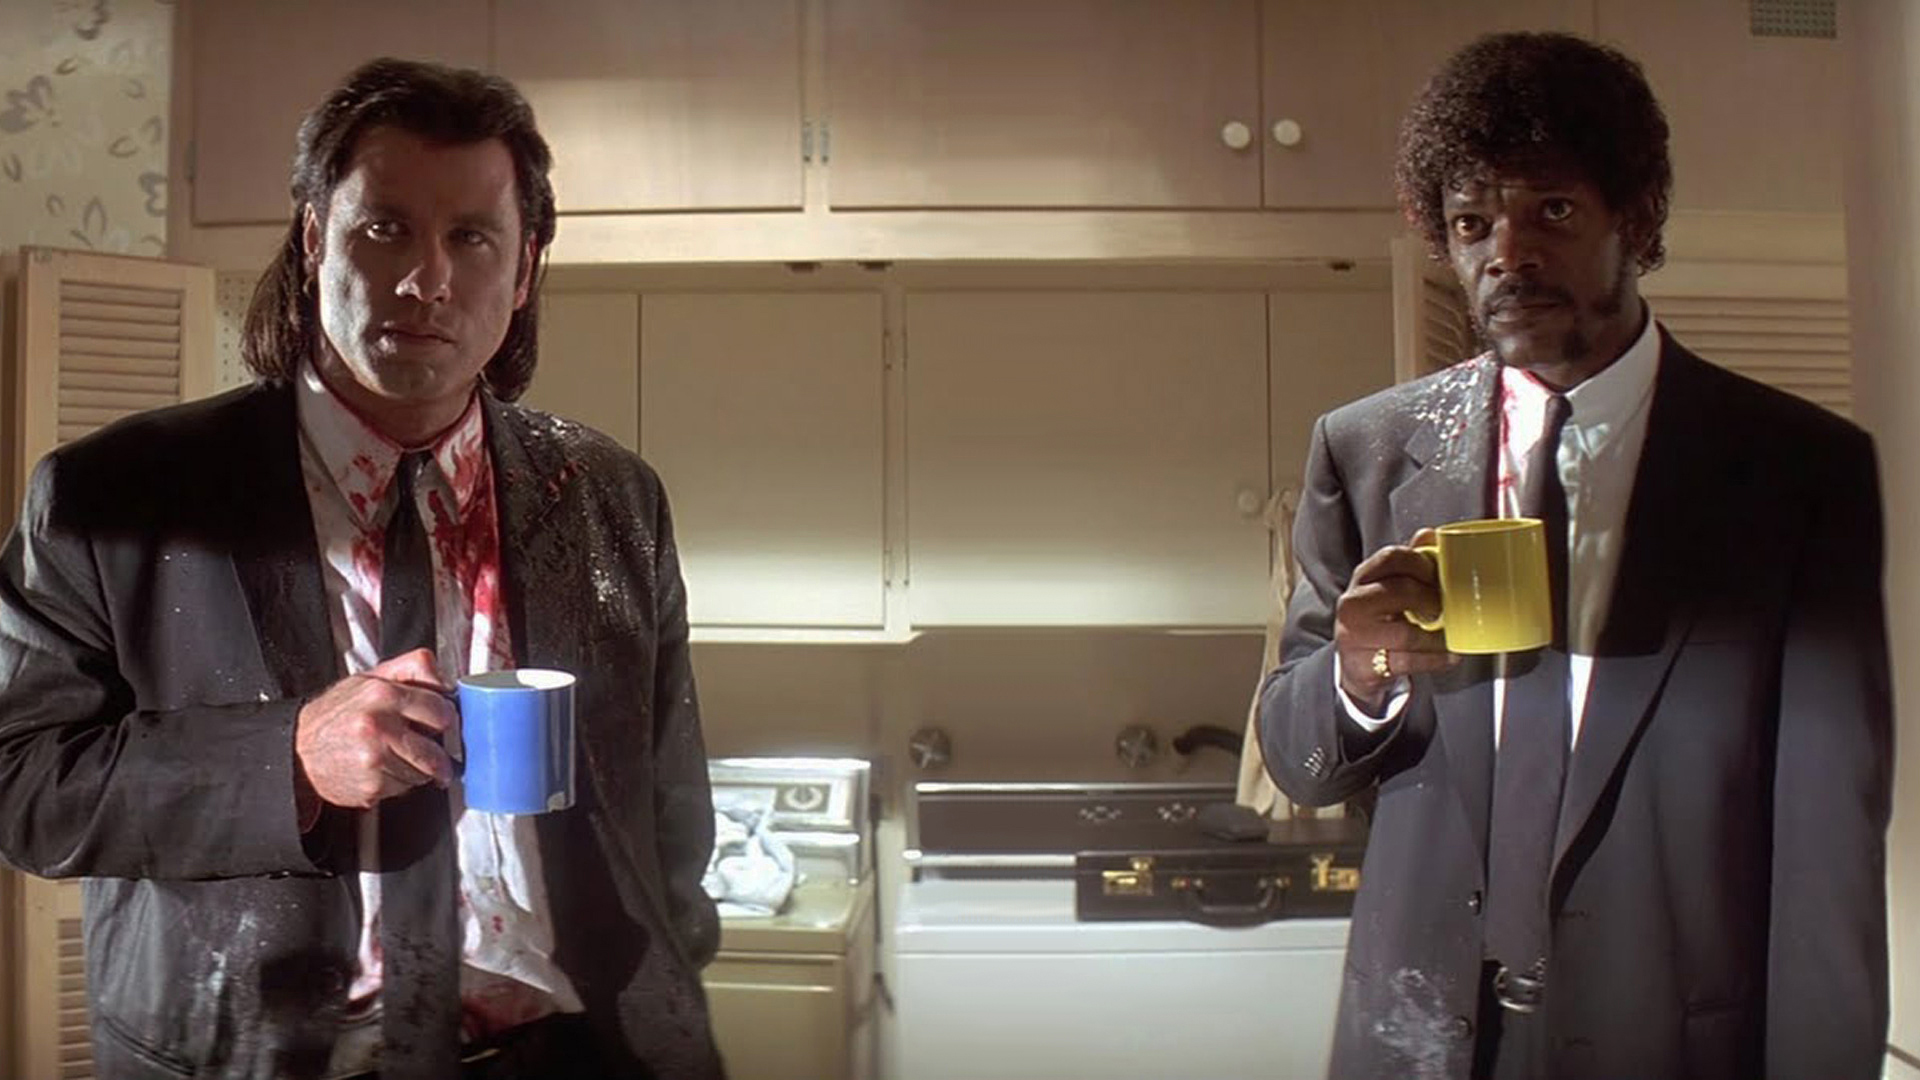 Pulp Fiction Vincent and Jules coffee. Virtual background to use on Zoom, Microsoft Teams, Skype, Google Meet, WebEx or any other compatible app.